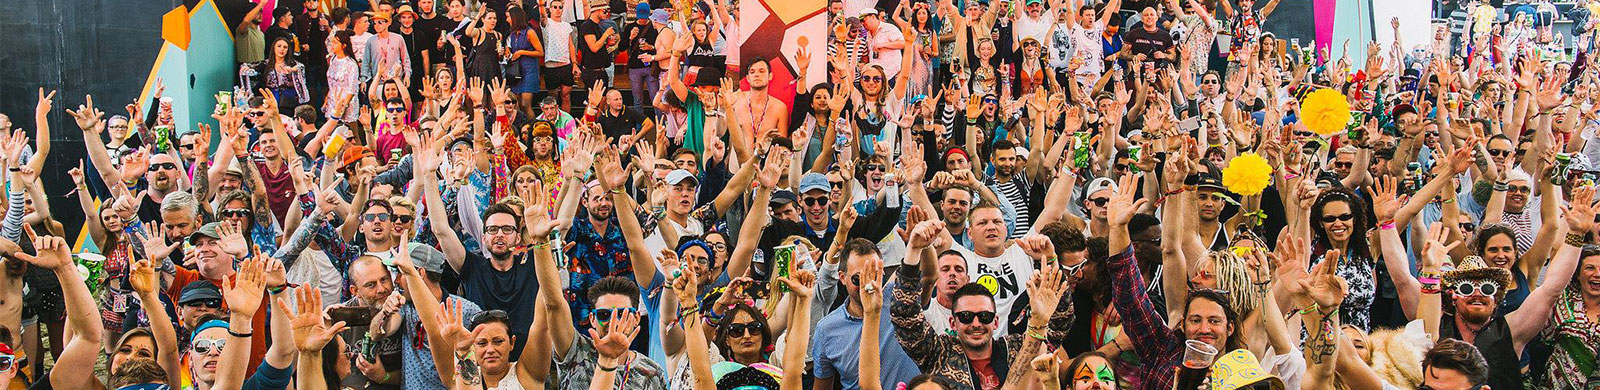 Bestival 2016: Like & Share to Win Tickets